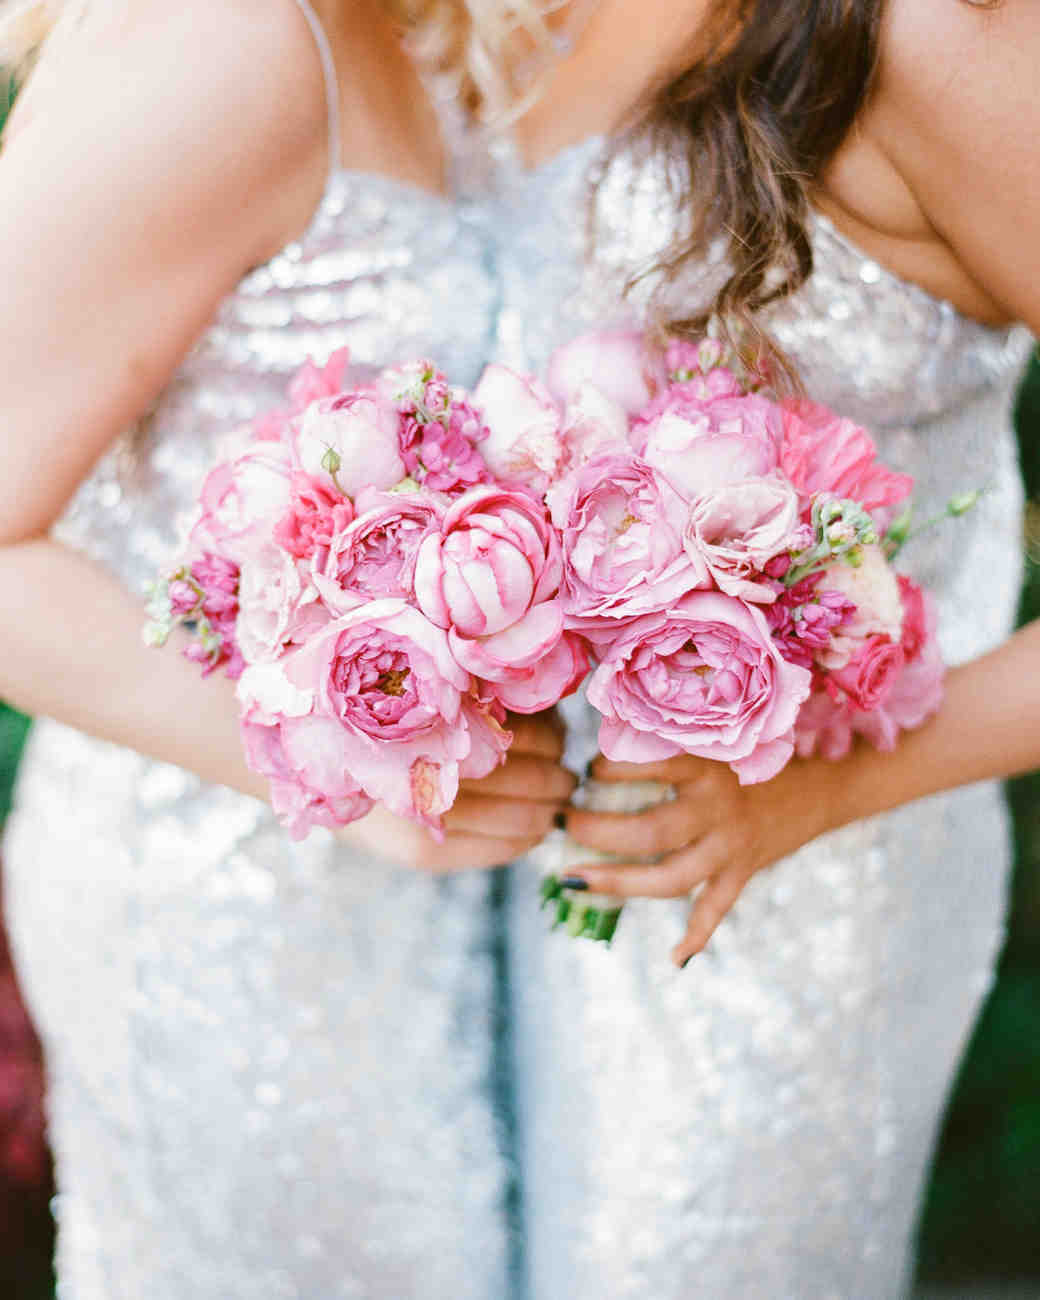 19 Silver Wedding Ideas That Are Sure to Shine | Martha Stewart Weddings